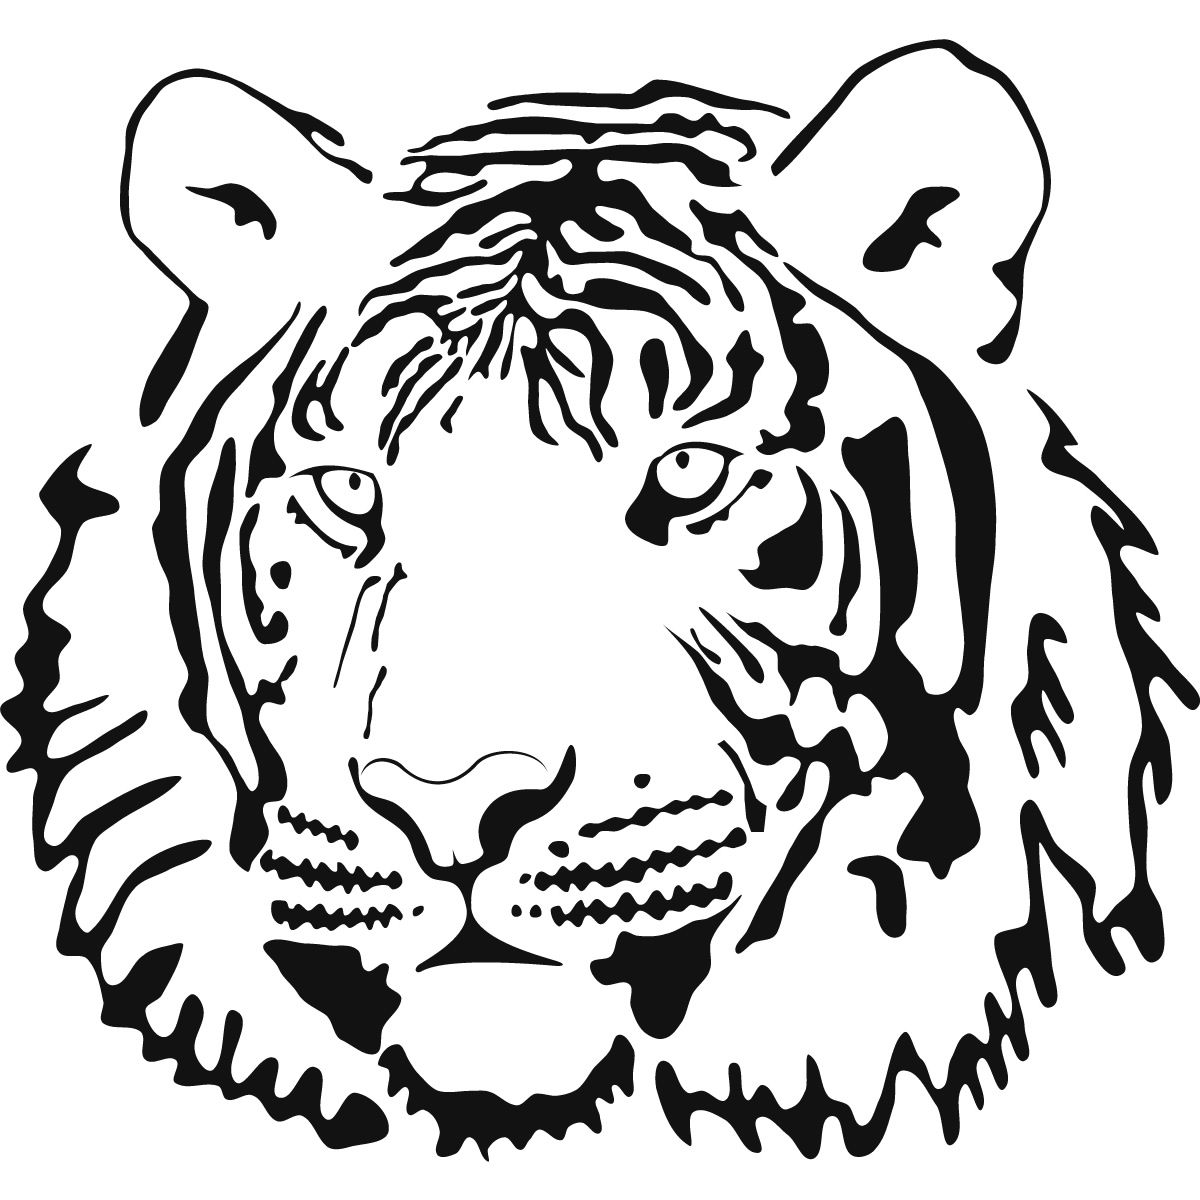 Uncategorized Coloring Page Of A Tiger tiger face coloring page bookssheets accessories and page